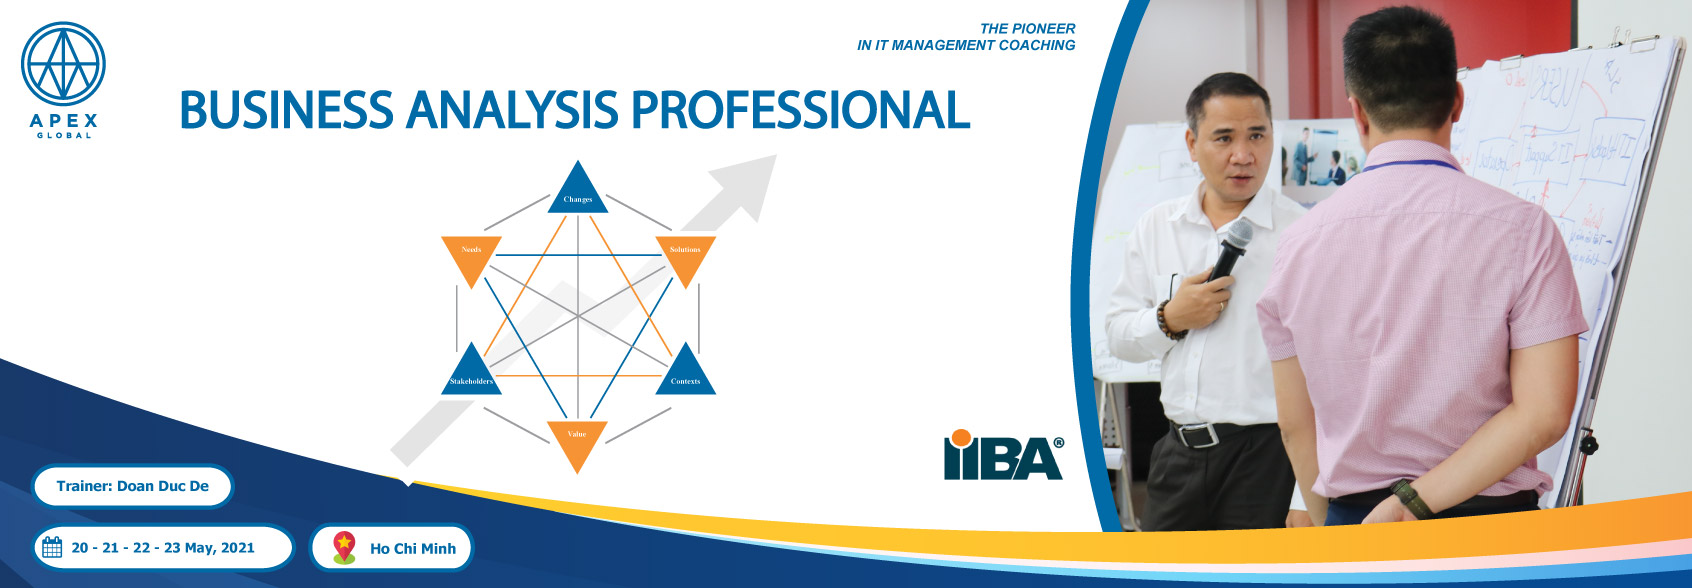 Business-Analysis-Professional